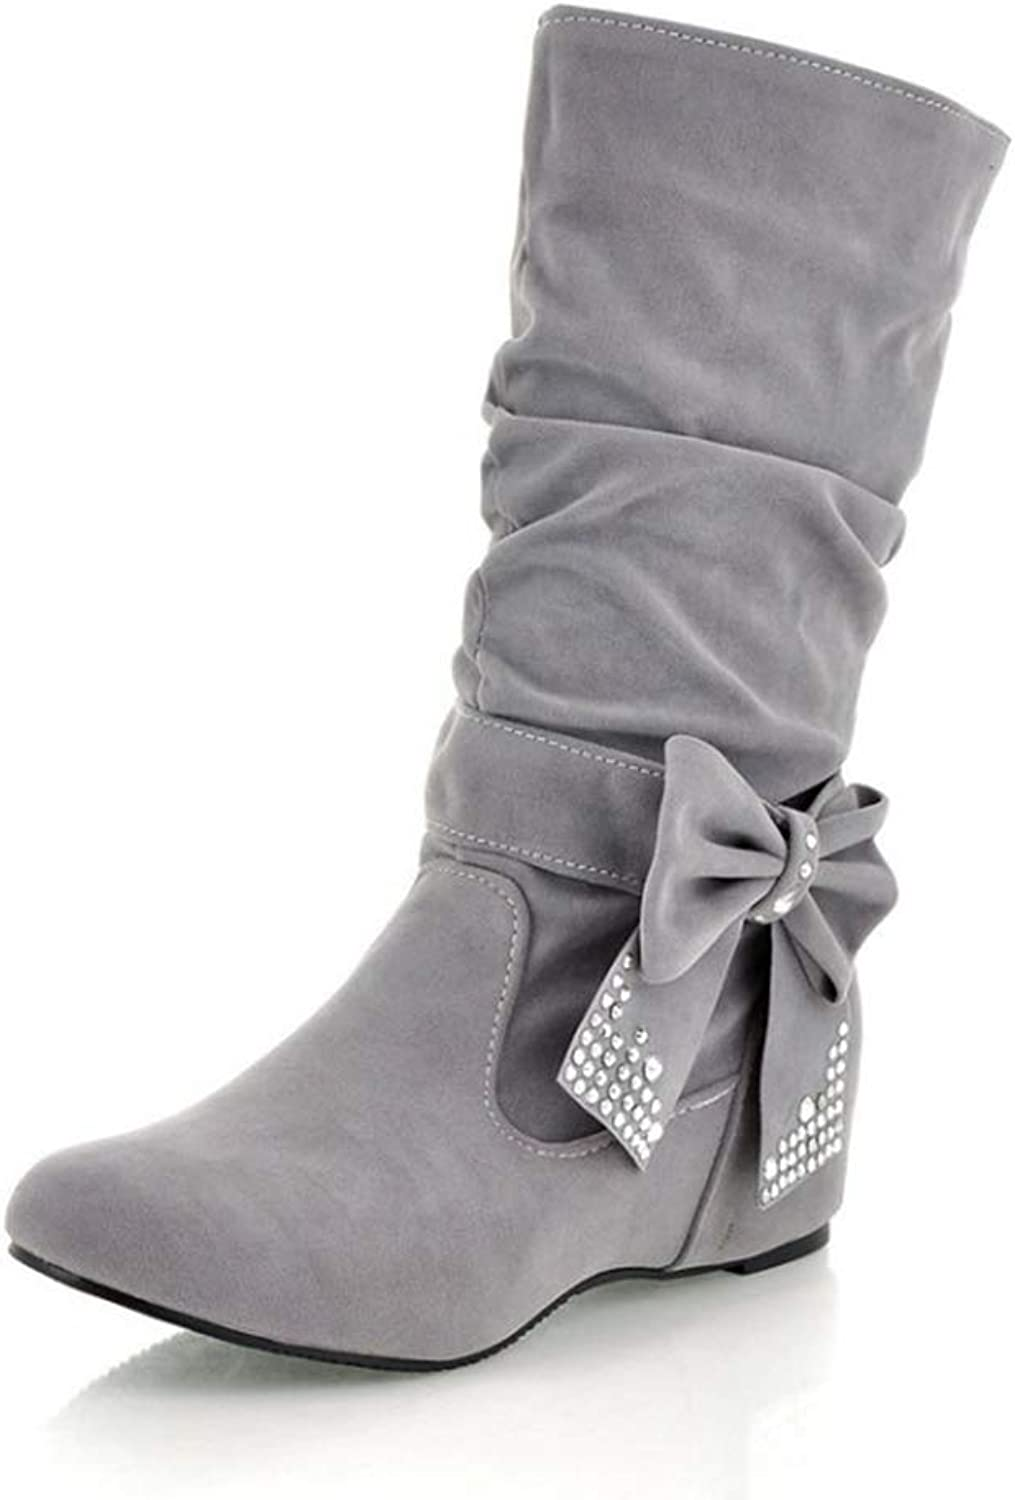 Sam Carle Women Boots, Fashion Solid color Bow Detachable Slip On Round Toe Mid-Calf Boots